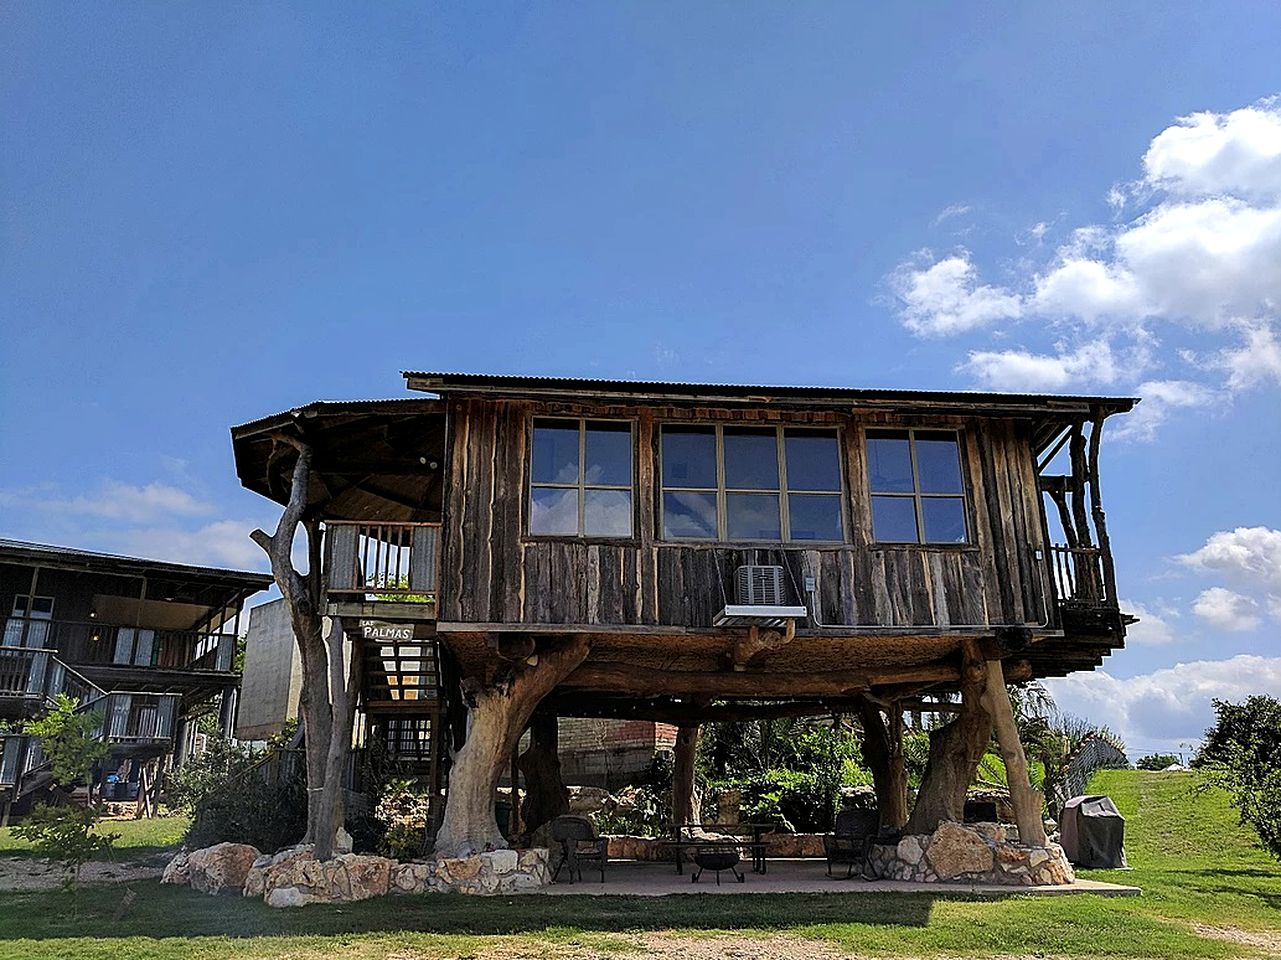 Tree Houses (New Braunfels, Texas, United States)